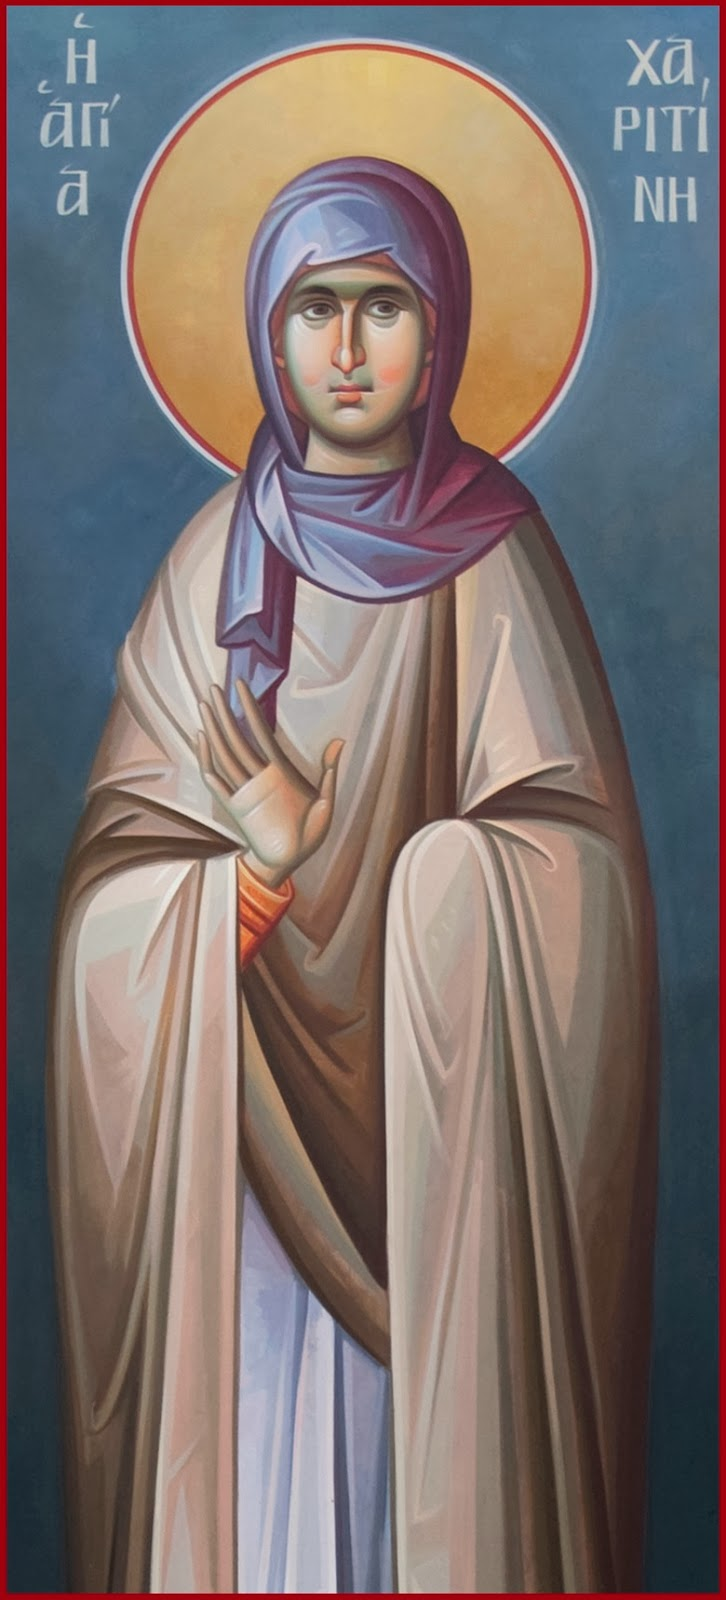 St. Xaritina the Martyr